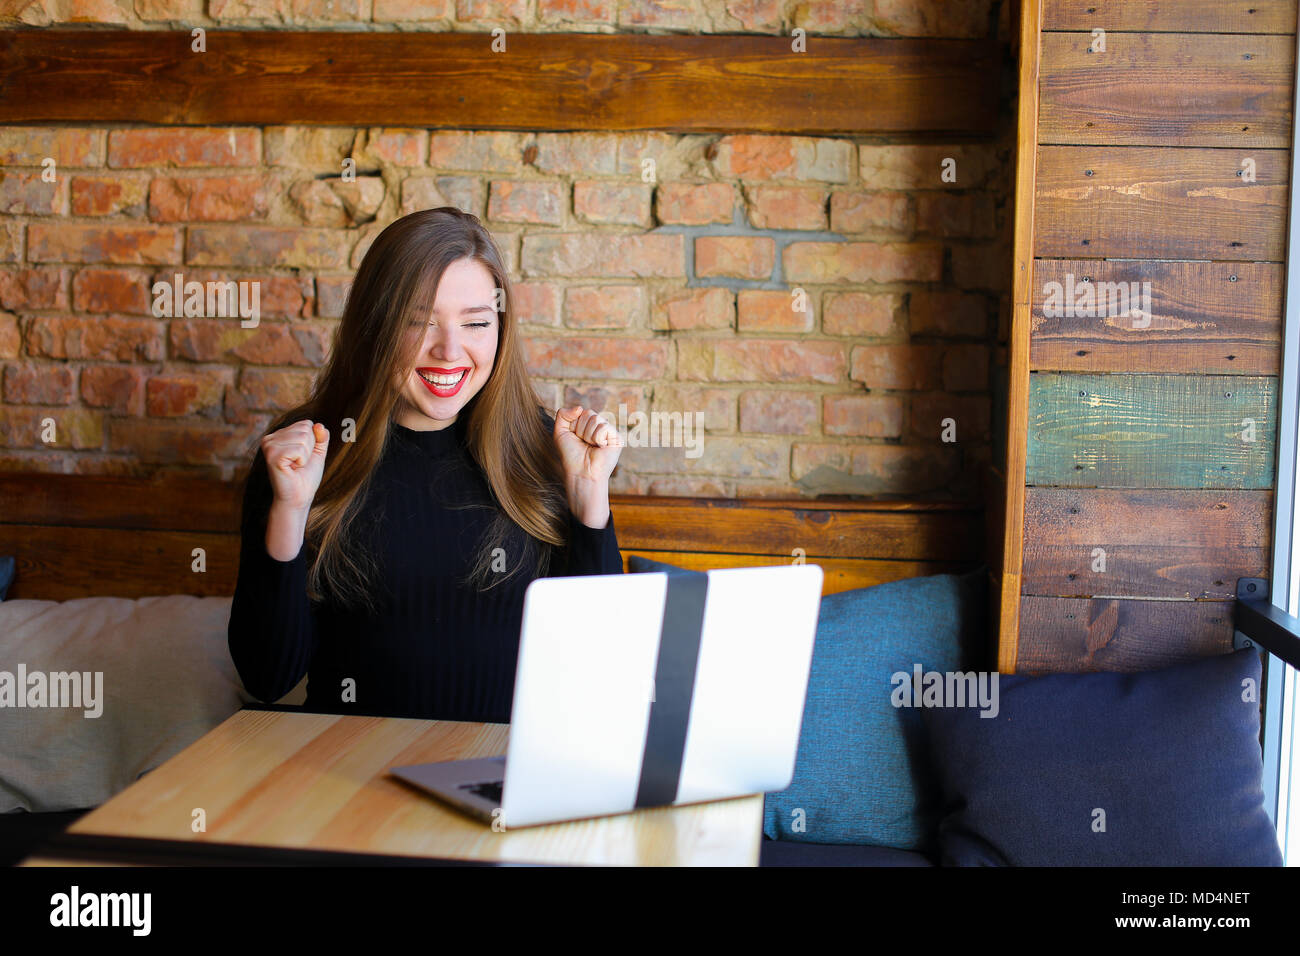 Lucky girl with make up rejoicing with laptop at cafe. - Stock Image